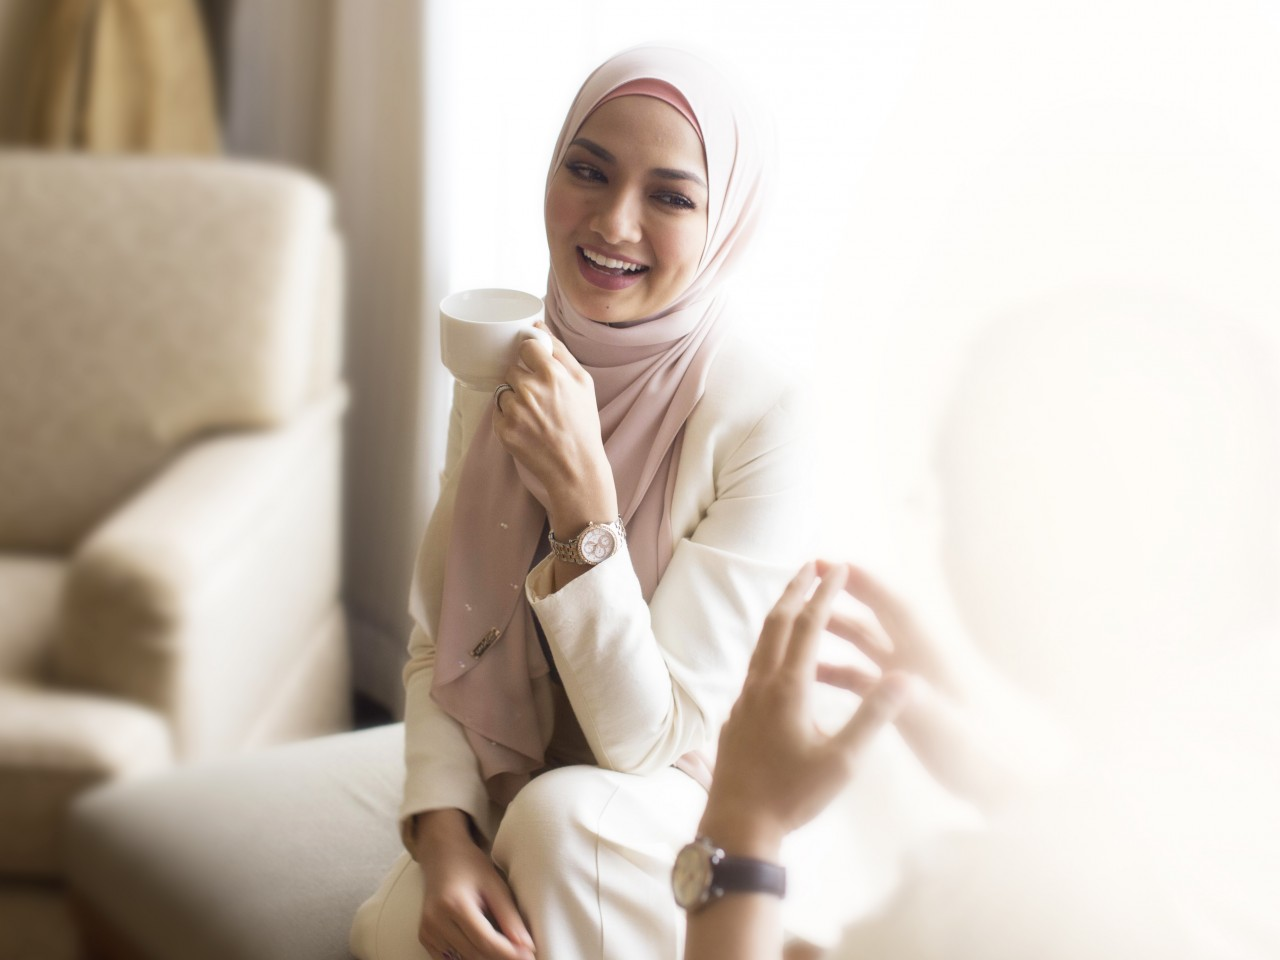 Neelofa Appointed As The Face Of Titan In Malaysia